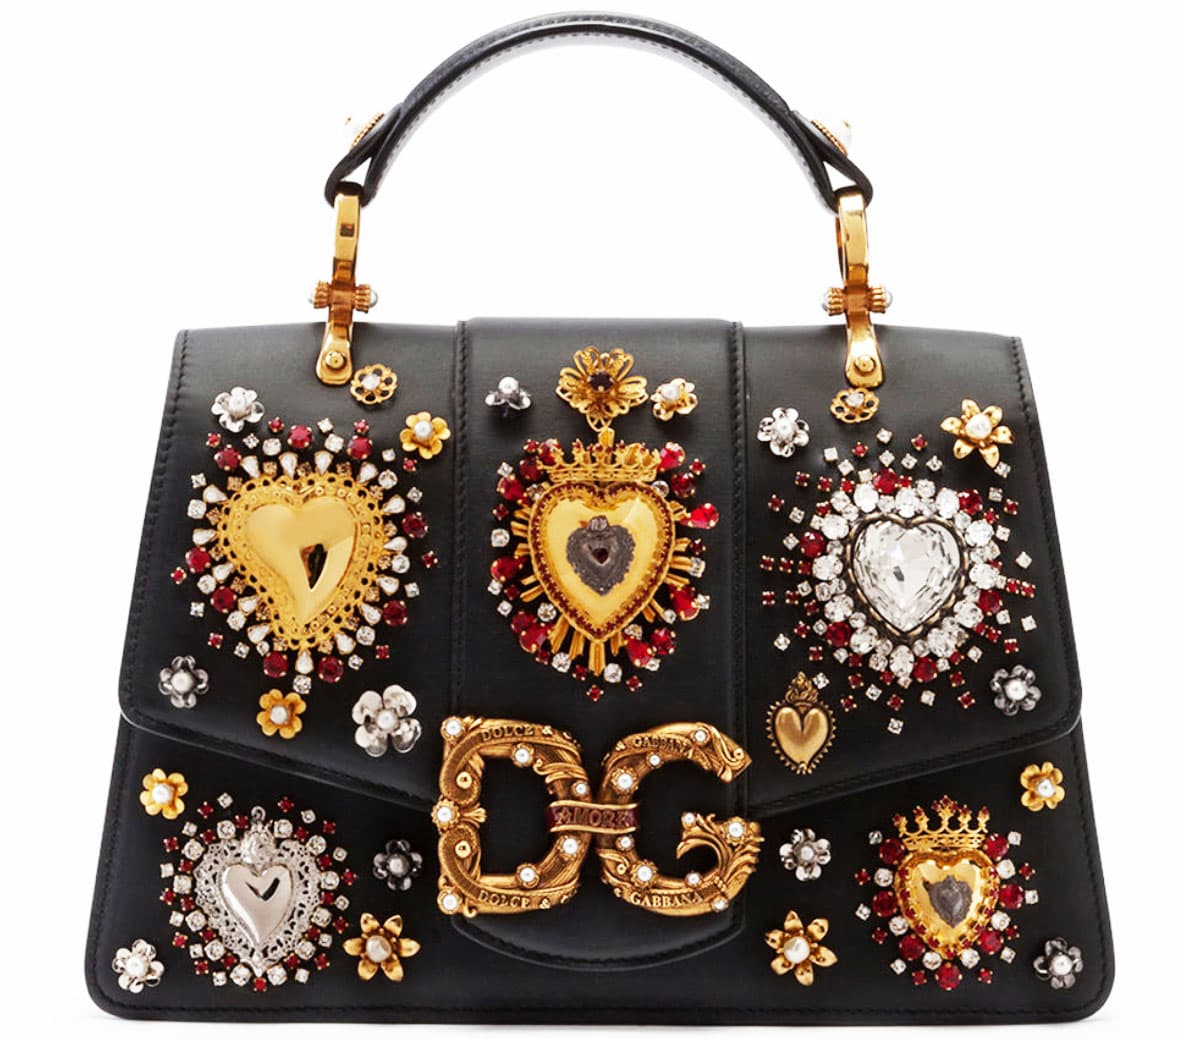 Dolce and Gabbana purse